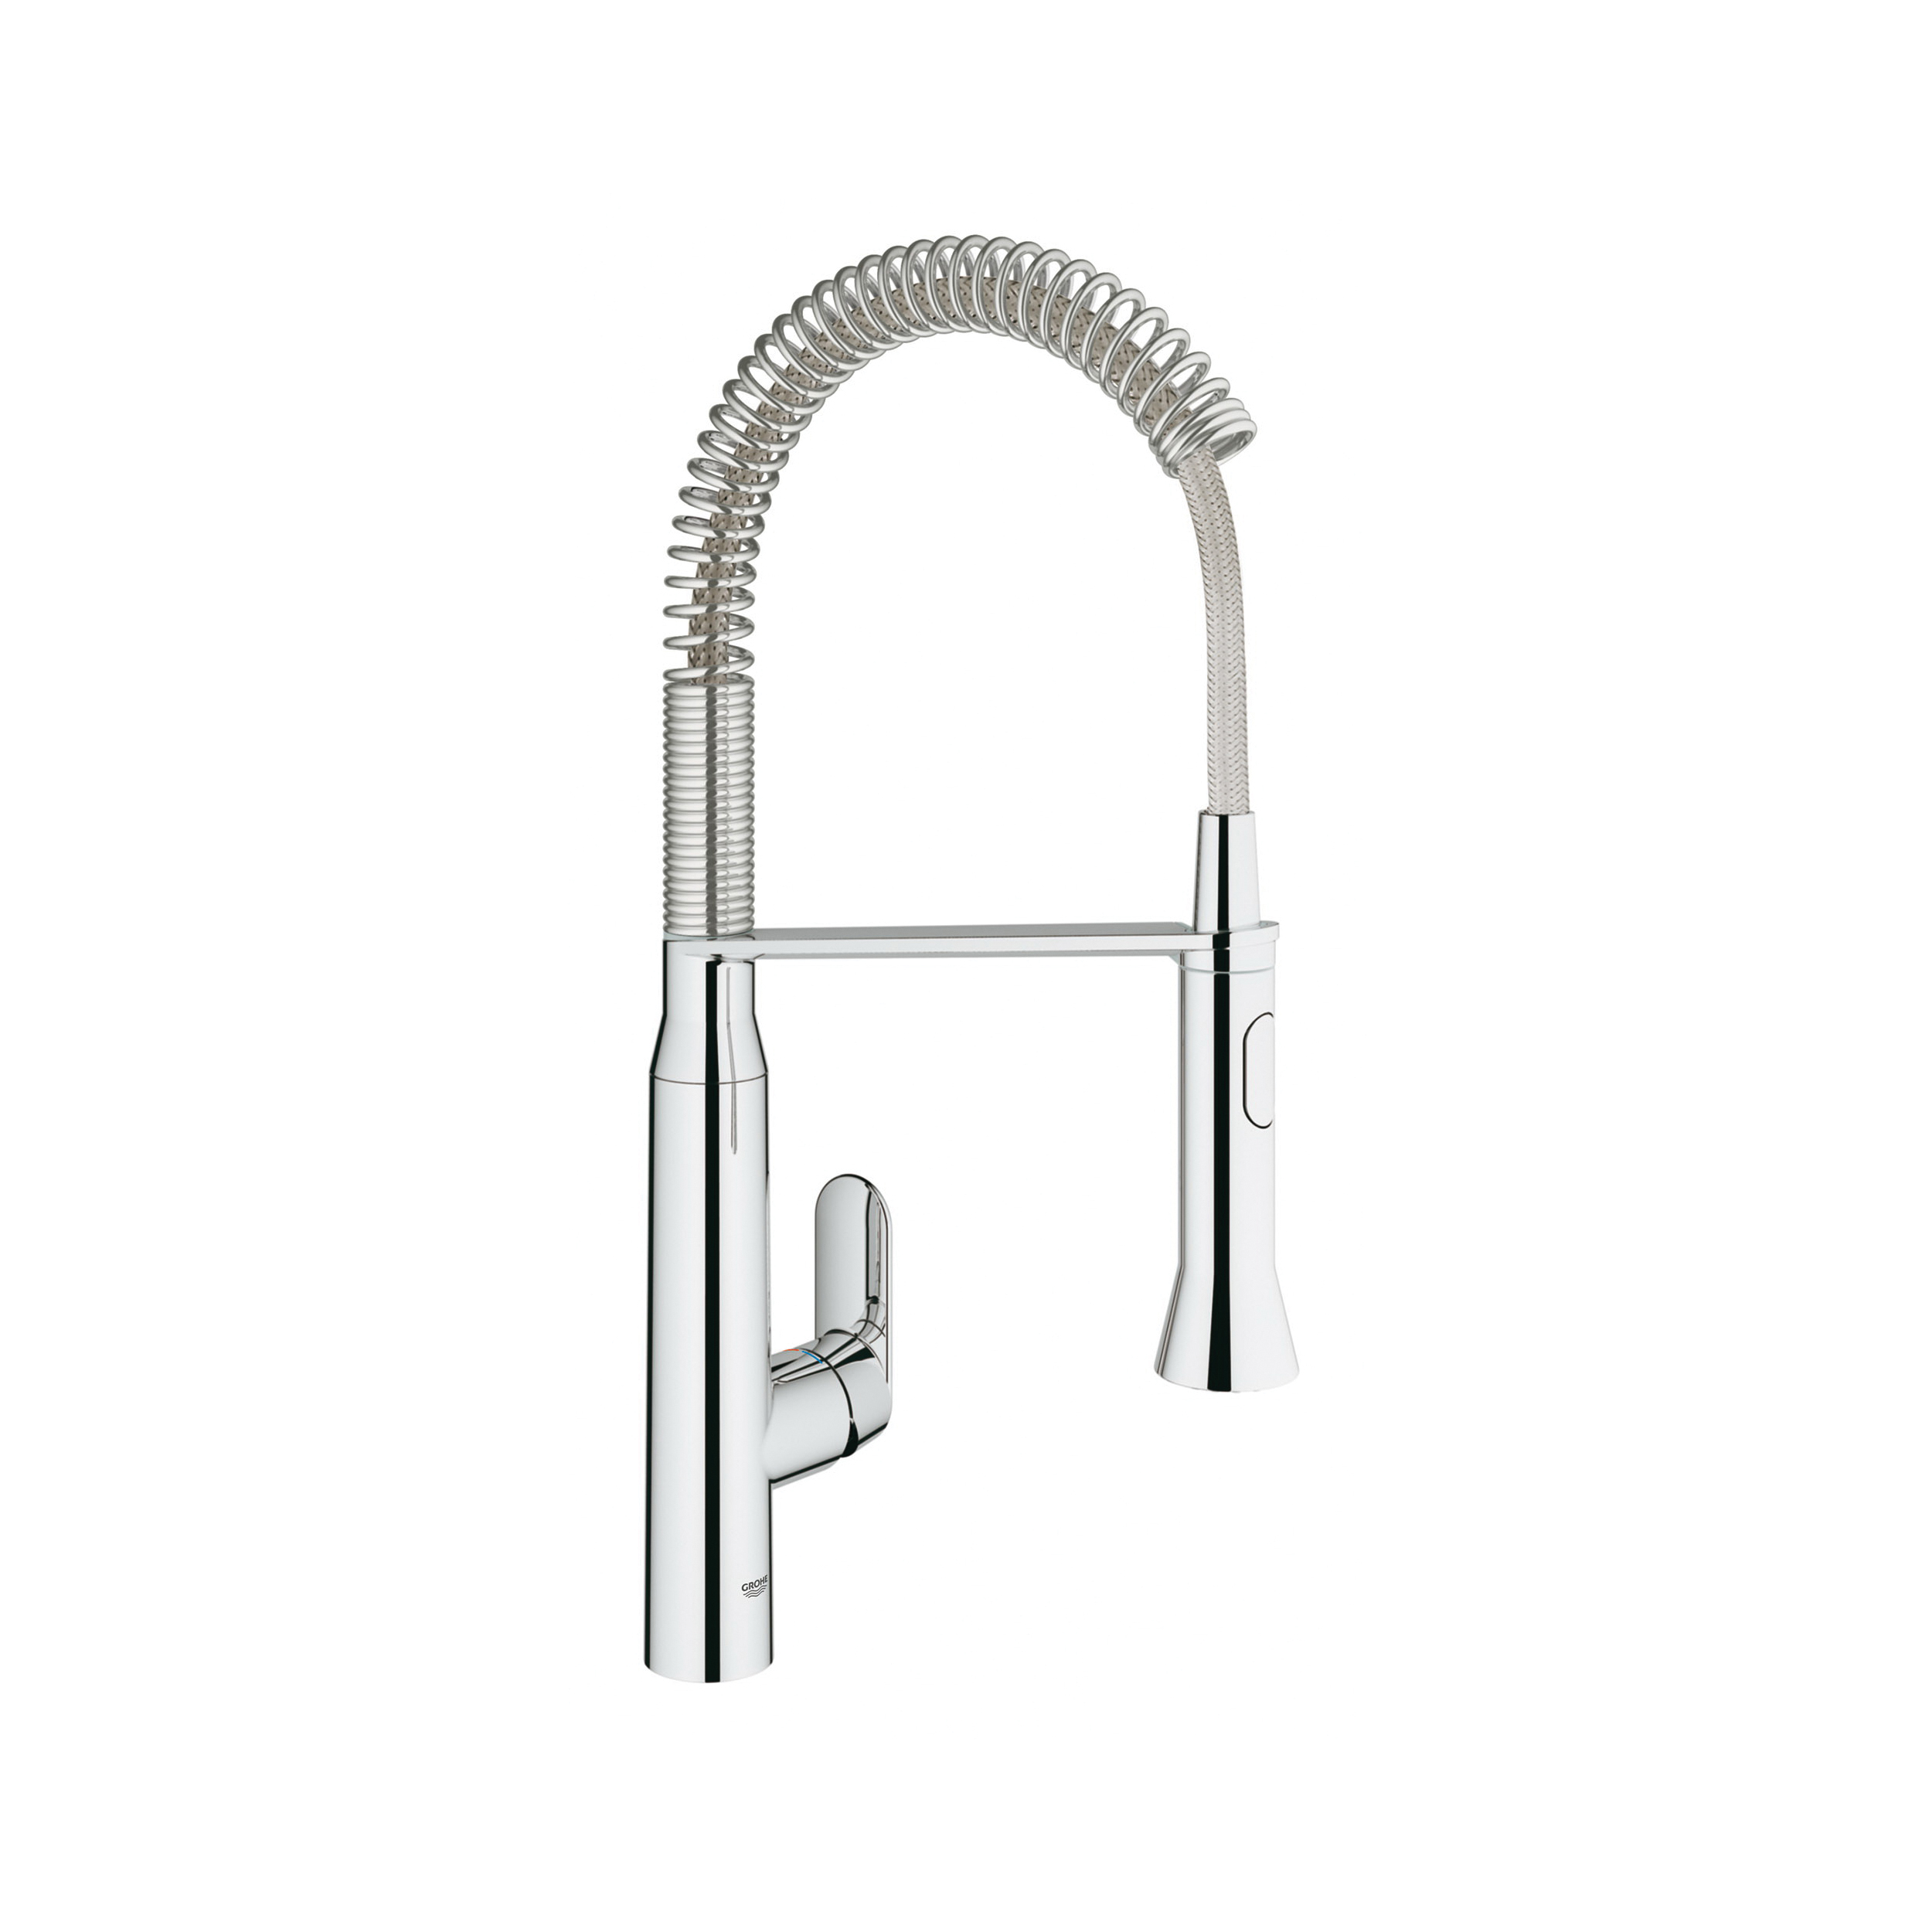 GROHE 30314000 K7 Semi-Pro Foot Control Kitchen Faucet, 1.75 gpm, 1 Faucet Hole, StarLight® Chrome, 1 Handle, Import, Residential